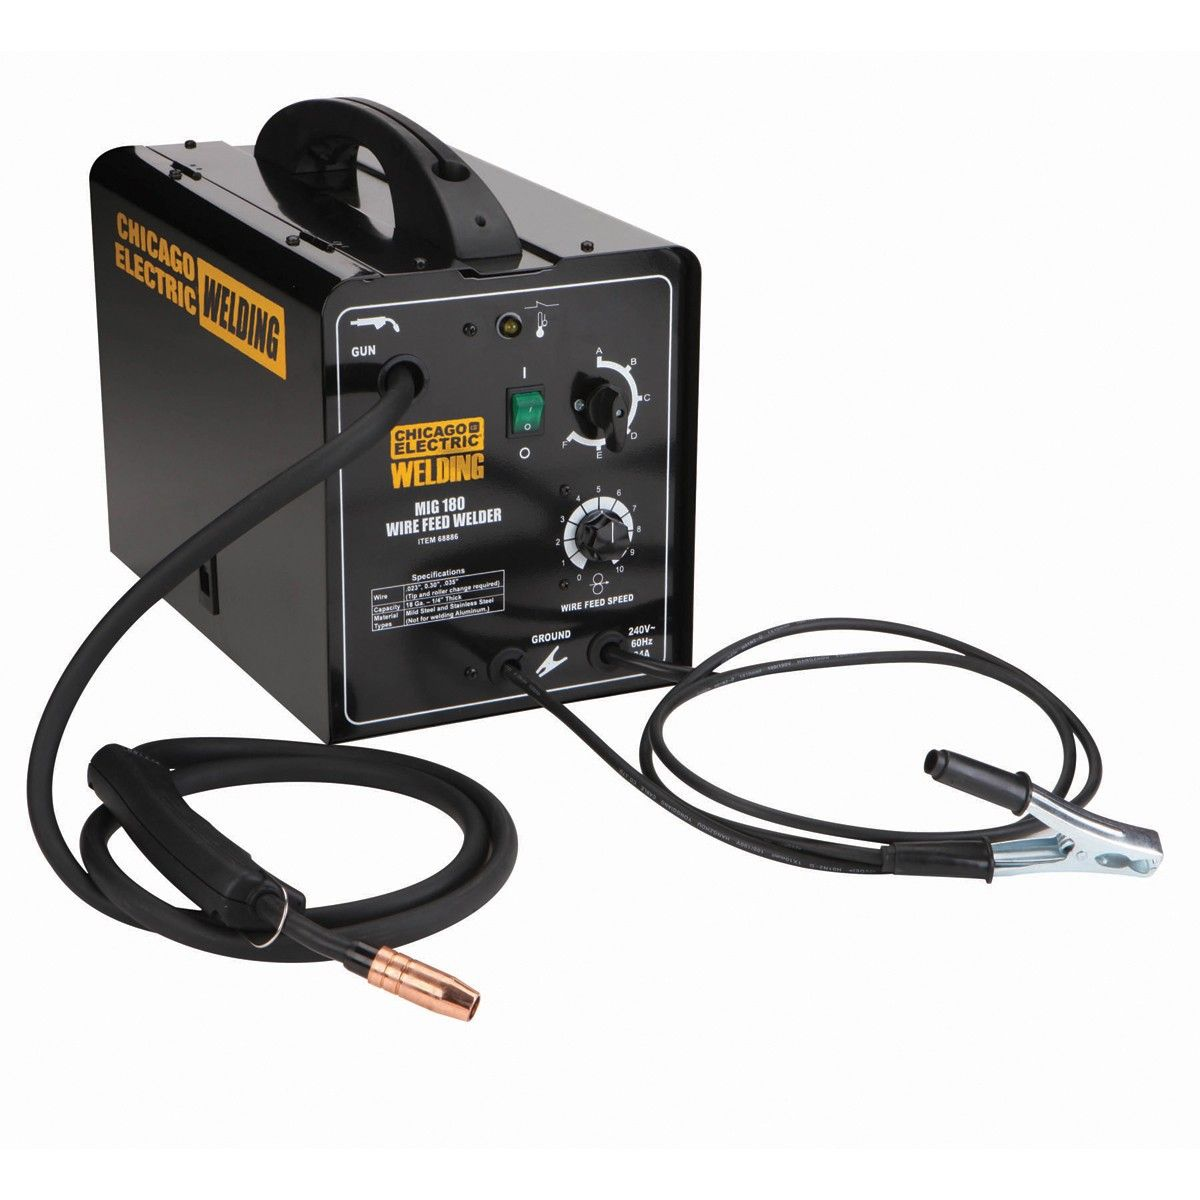 Harbor Freight - 180 Amp MIG/Flux Wire Feed Welder - under 300 bucks ...